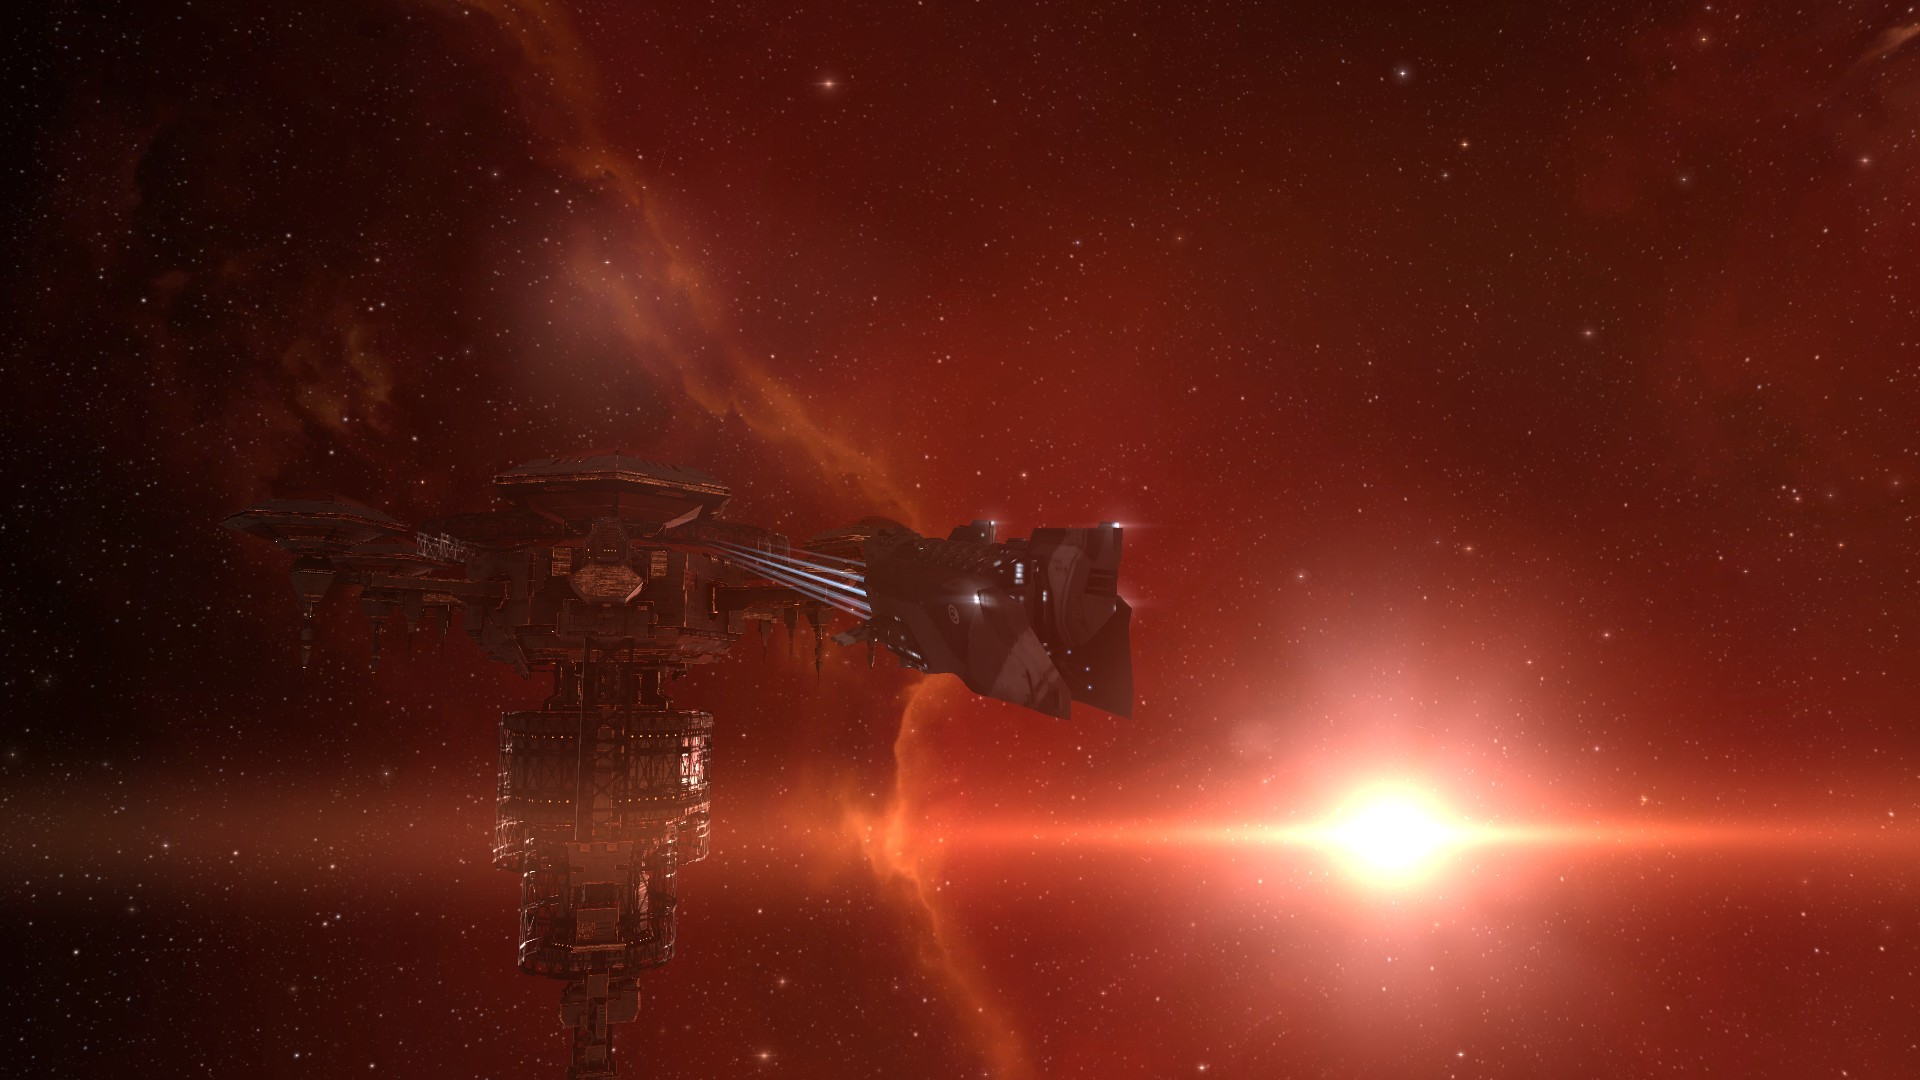 Res: 1920x1080, Outer space stars spaceships station science fiction sci-fi wallpaper